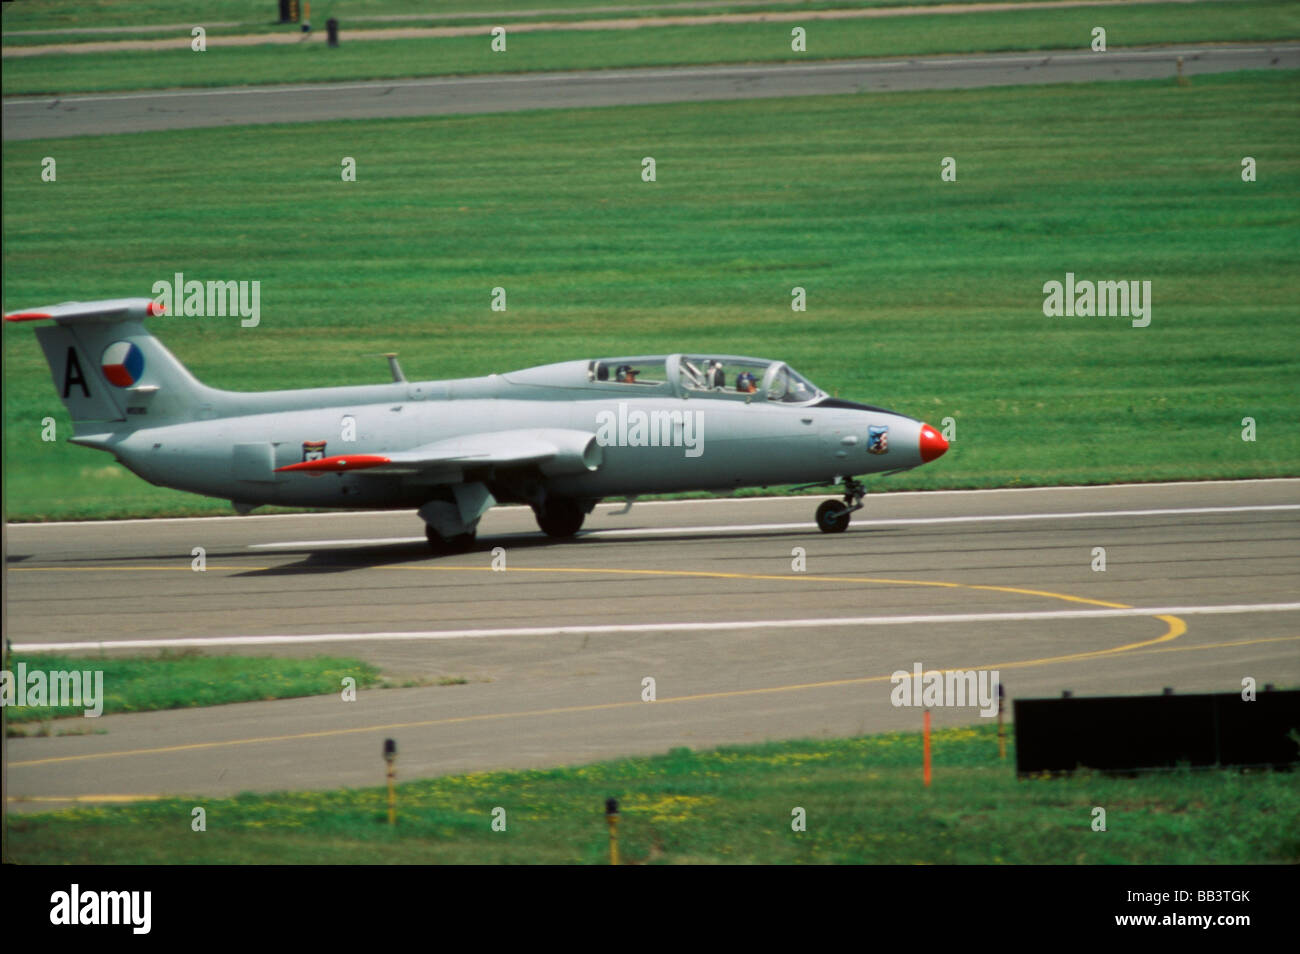 Aero Vodochody L-29 Delfin with Czech Republic markings at the CAF Air Show - Stock Image